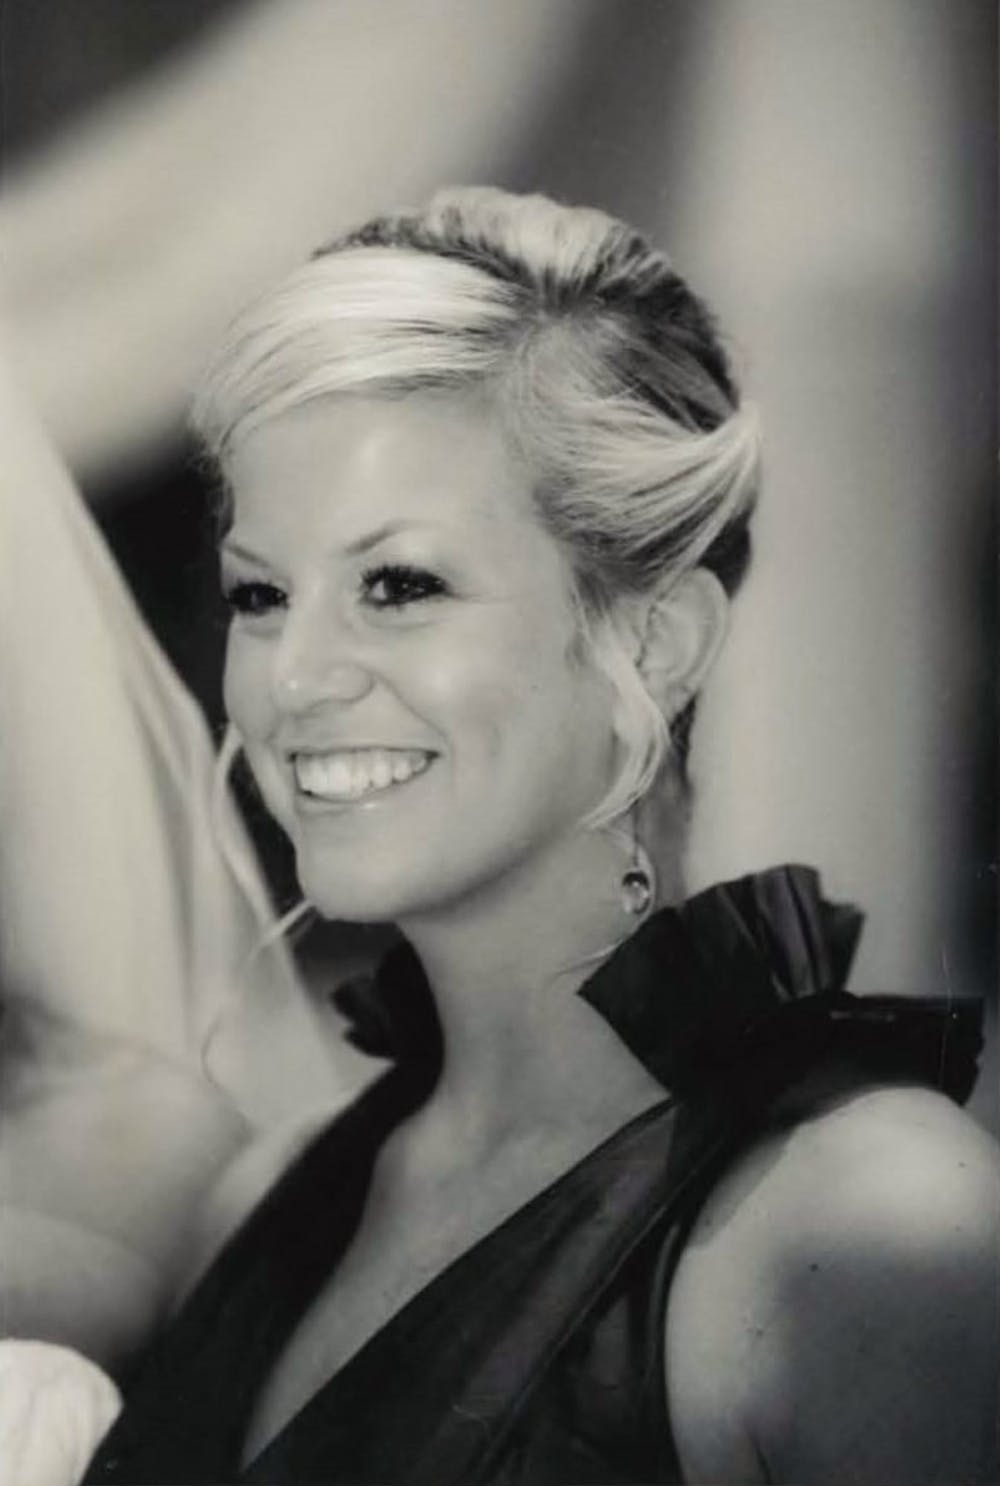 Family awarded $9 million in lawsuit settlement involving Auburn Urgent Care